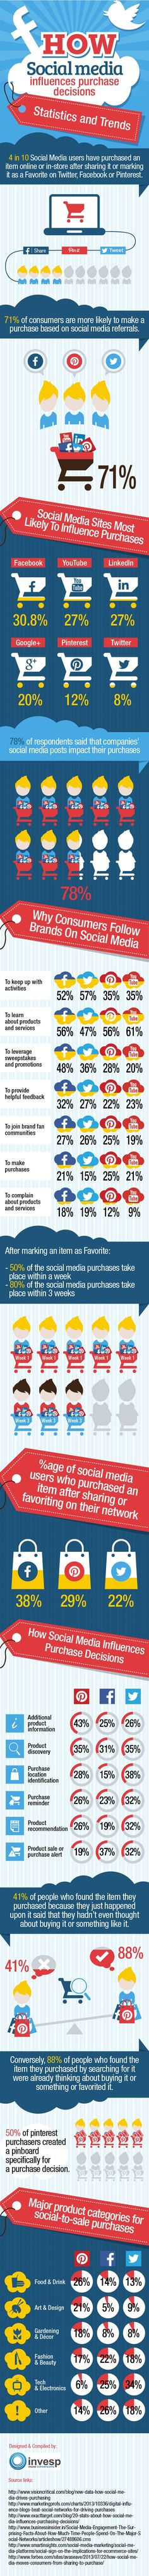 How Social Media Influences Purchase Decisions [INFOGRAPHIC]